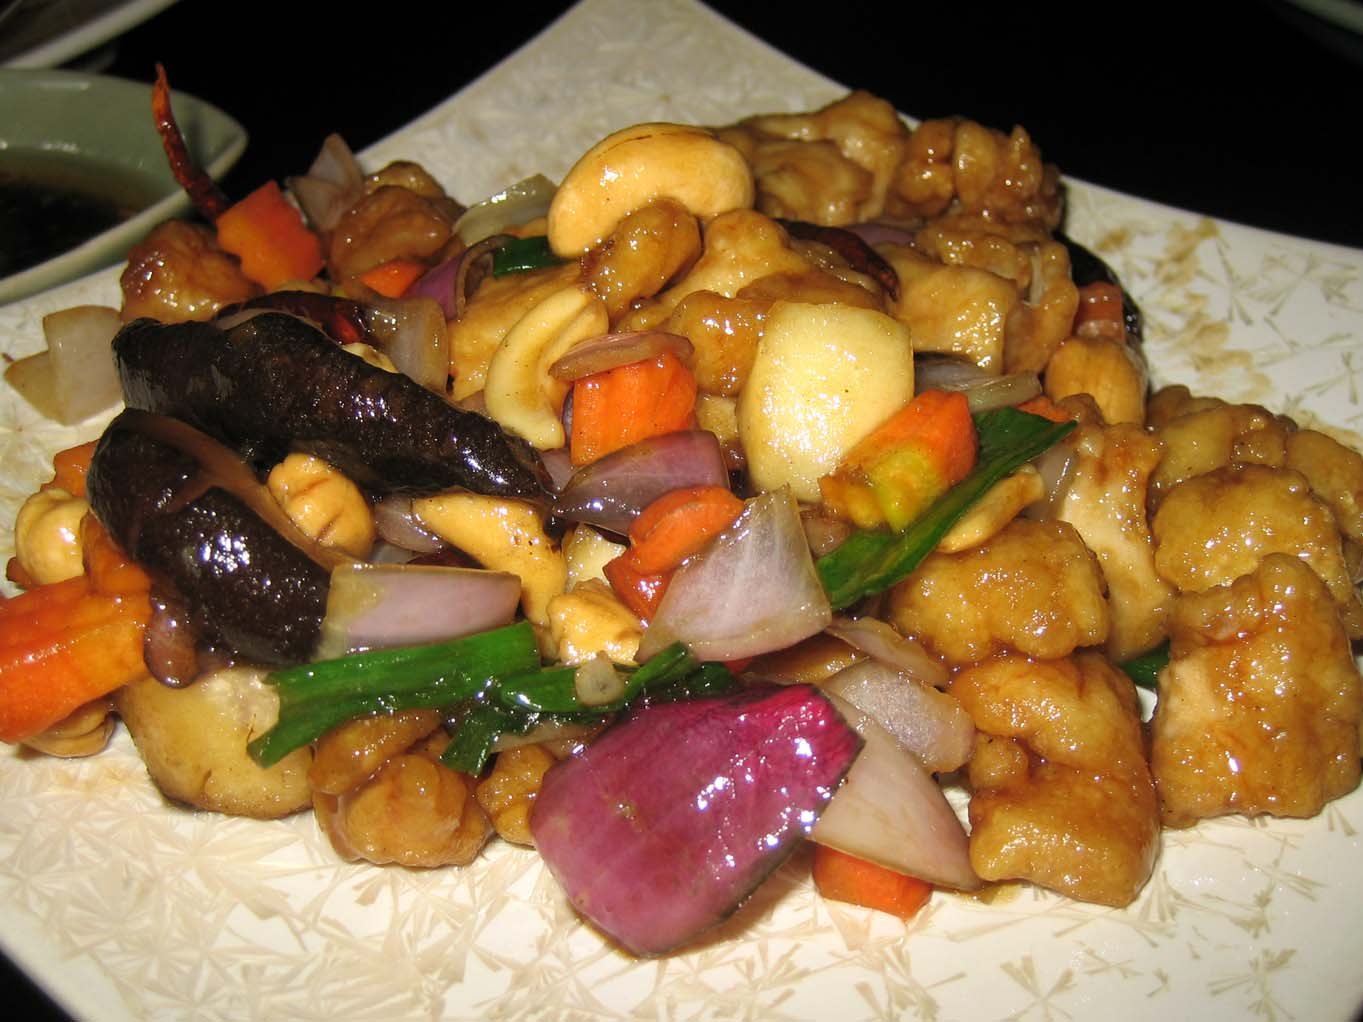 Stir fry chicken with cashewnuts